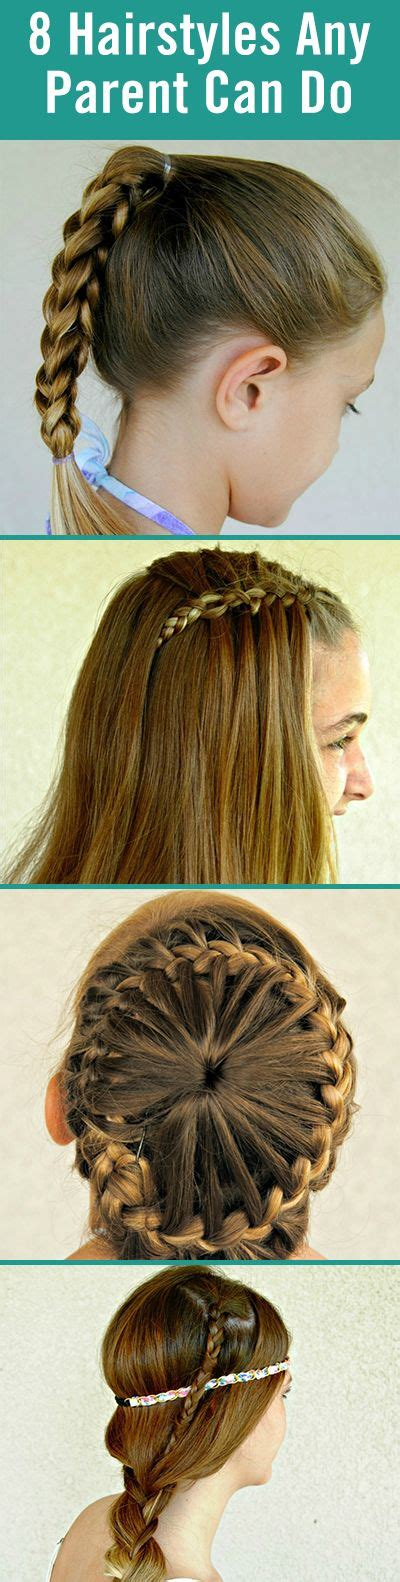 Hairstyles For To Do Themselves by 8 Hairstyles Any Parent Can Do Themselves